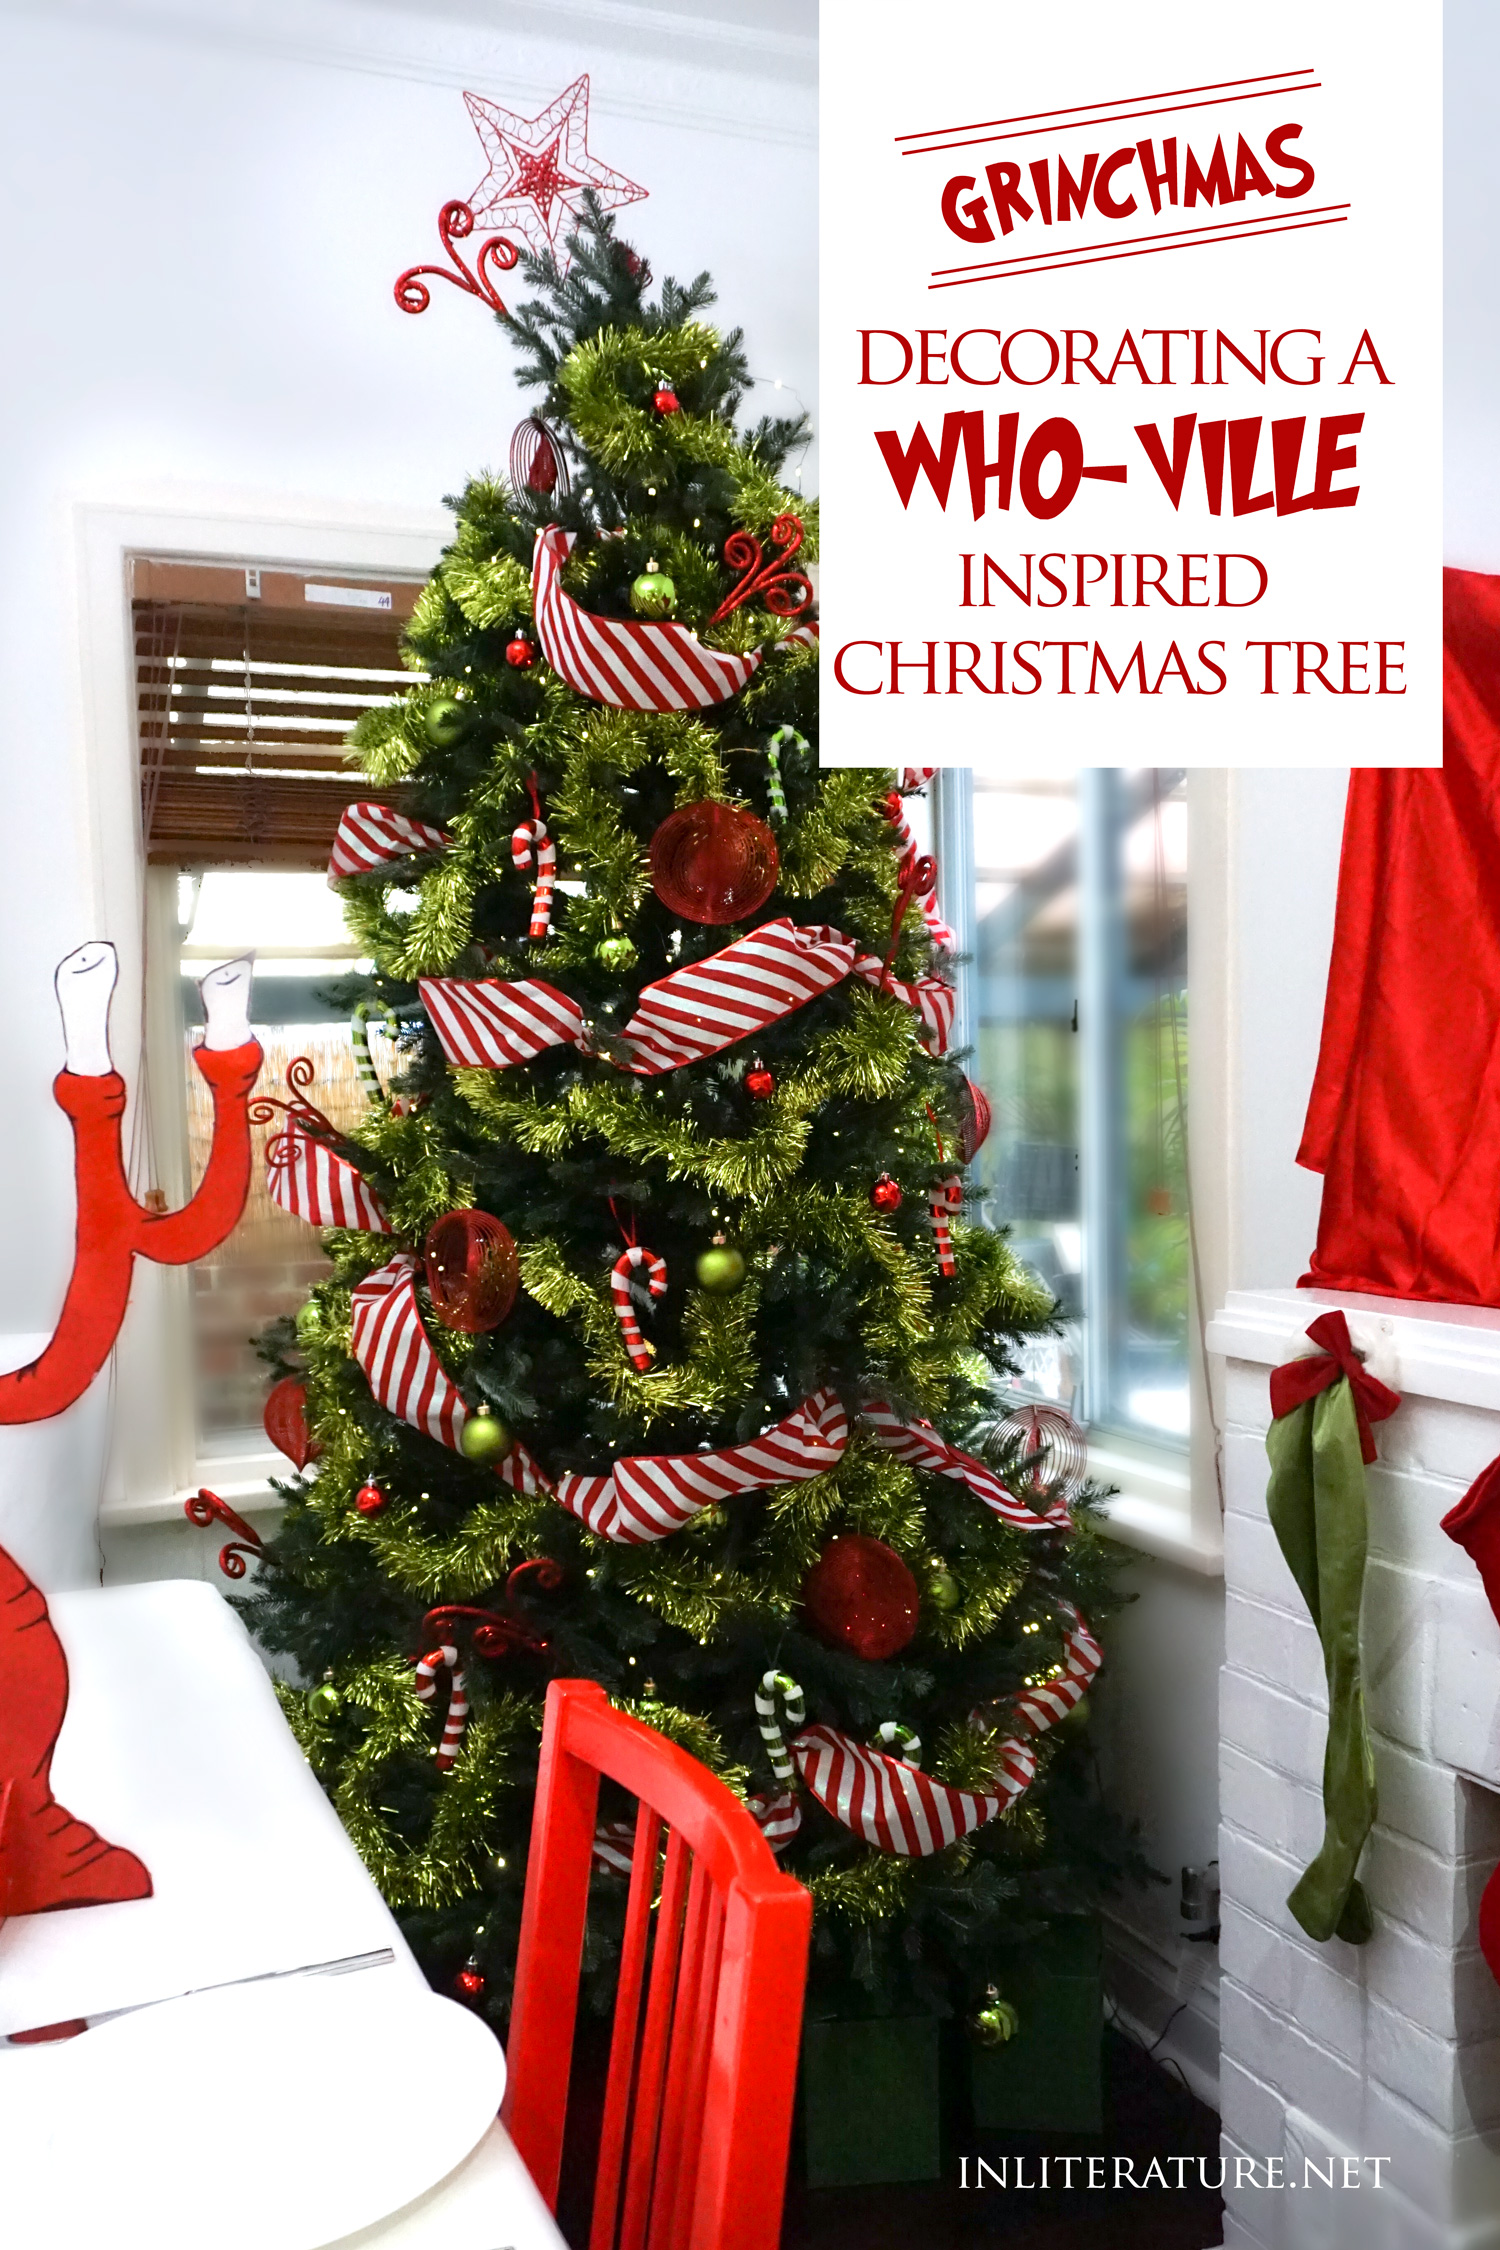 Take inspiration from Who-ville this Christmas season, and decorate your tree!